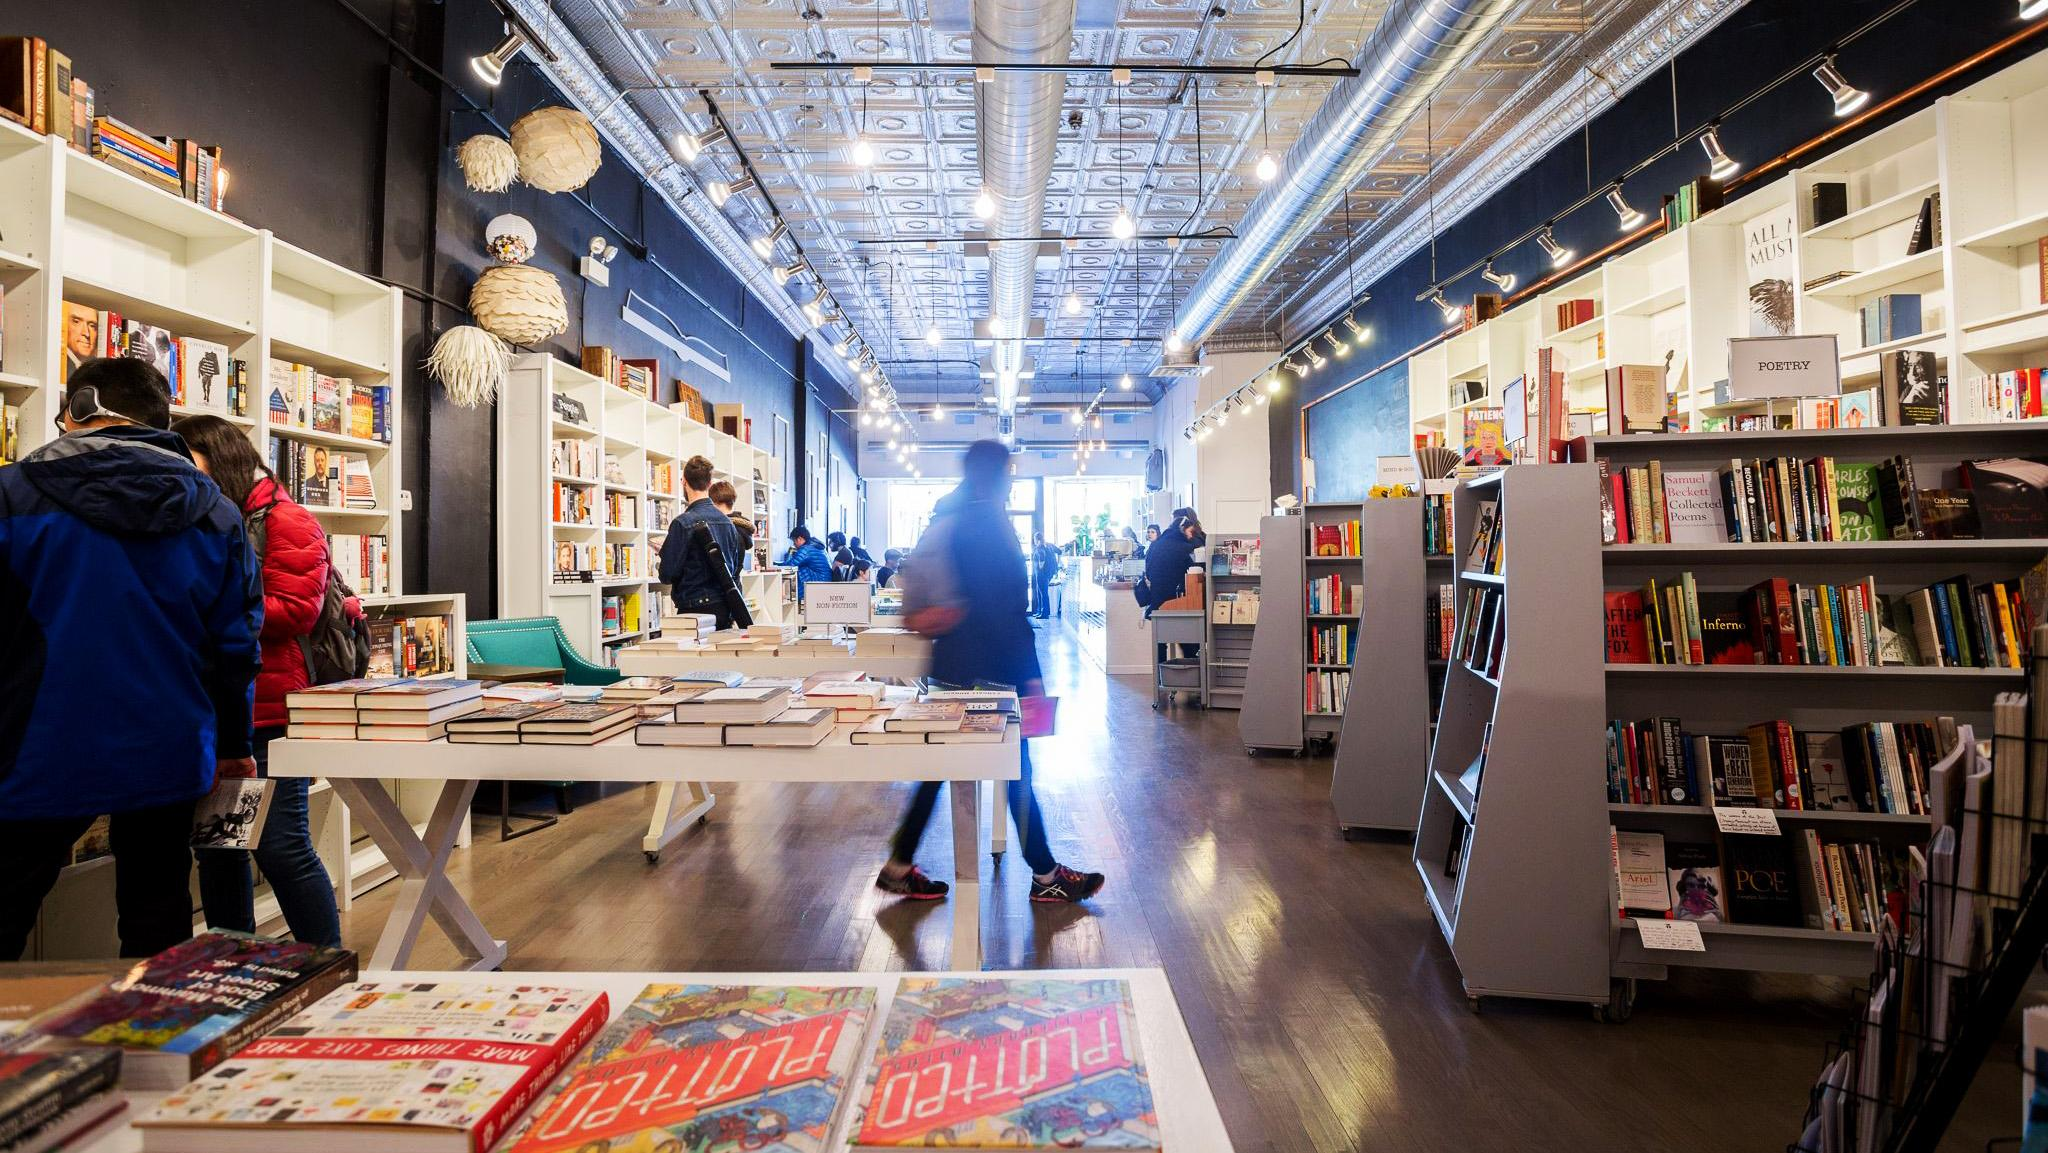 Volumes Bookcafe is one of two dozen bookstores participating in #MyChicagoBookstore Challenge in honor of Independent Bookstore Day. (Courtesy of Volumes Bookcafe)